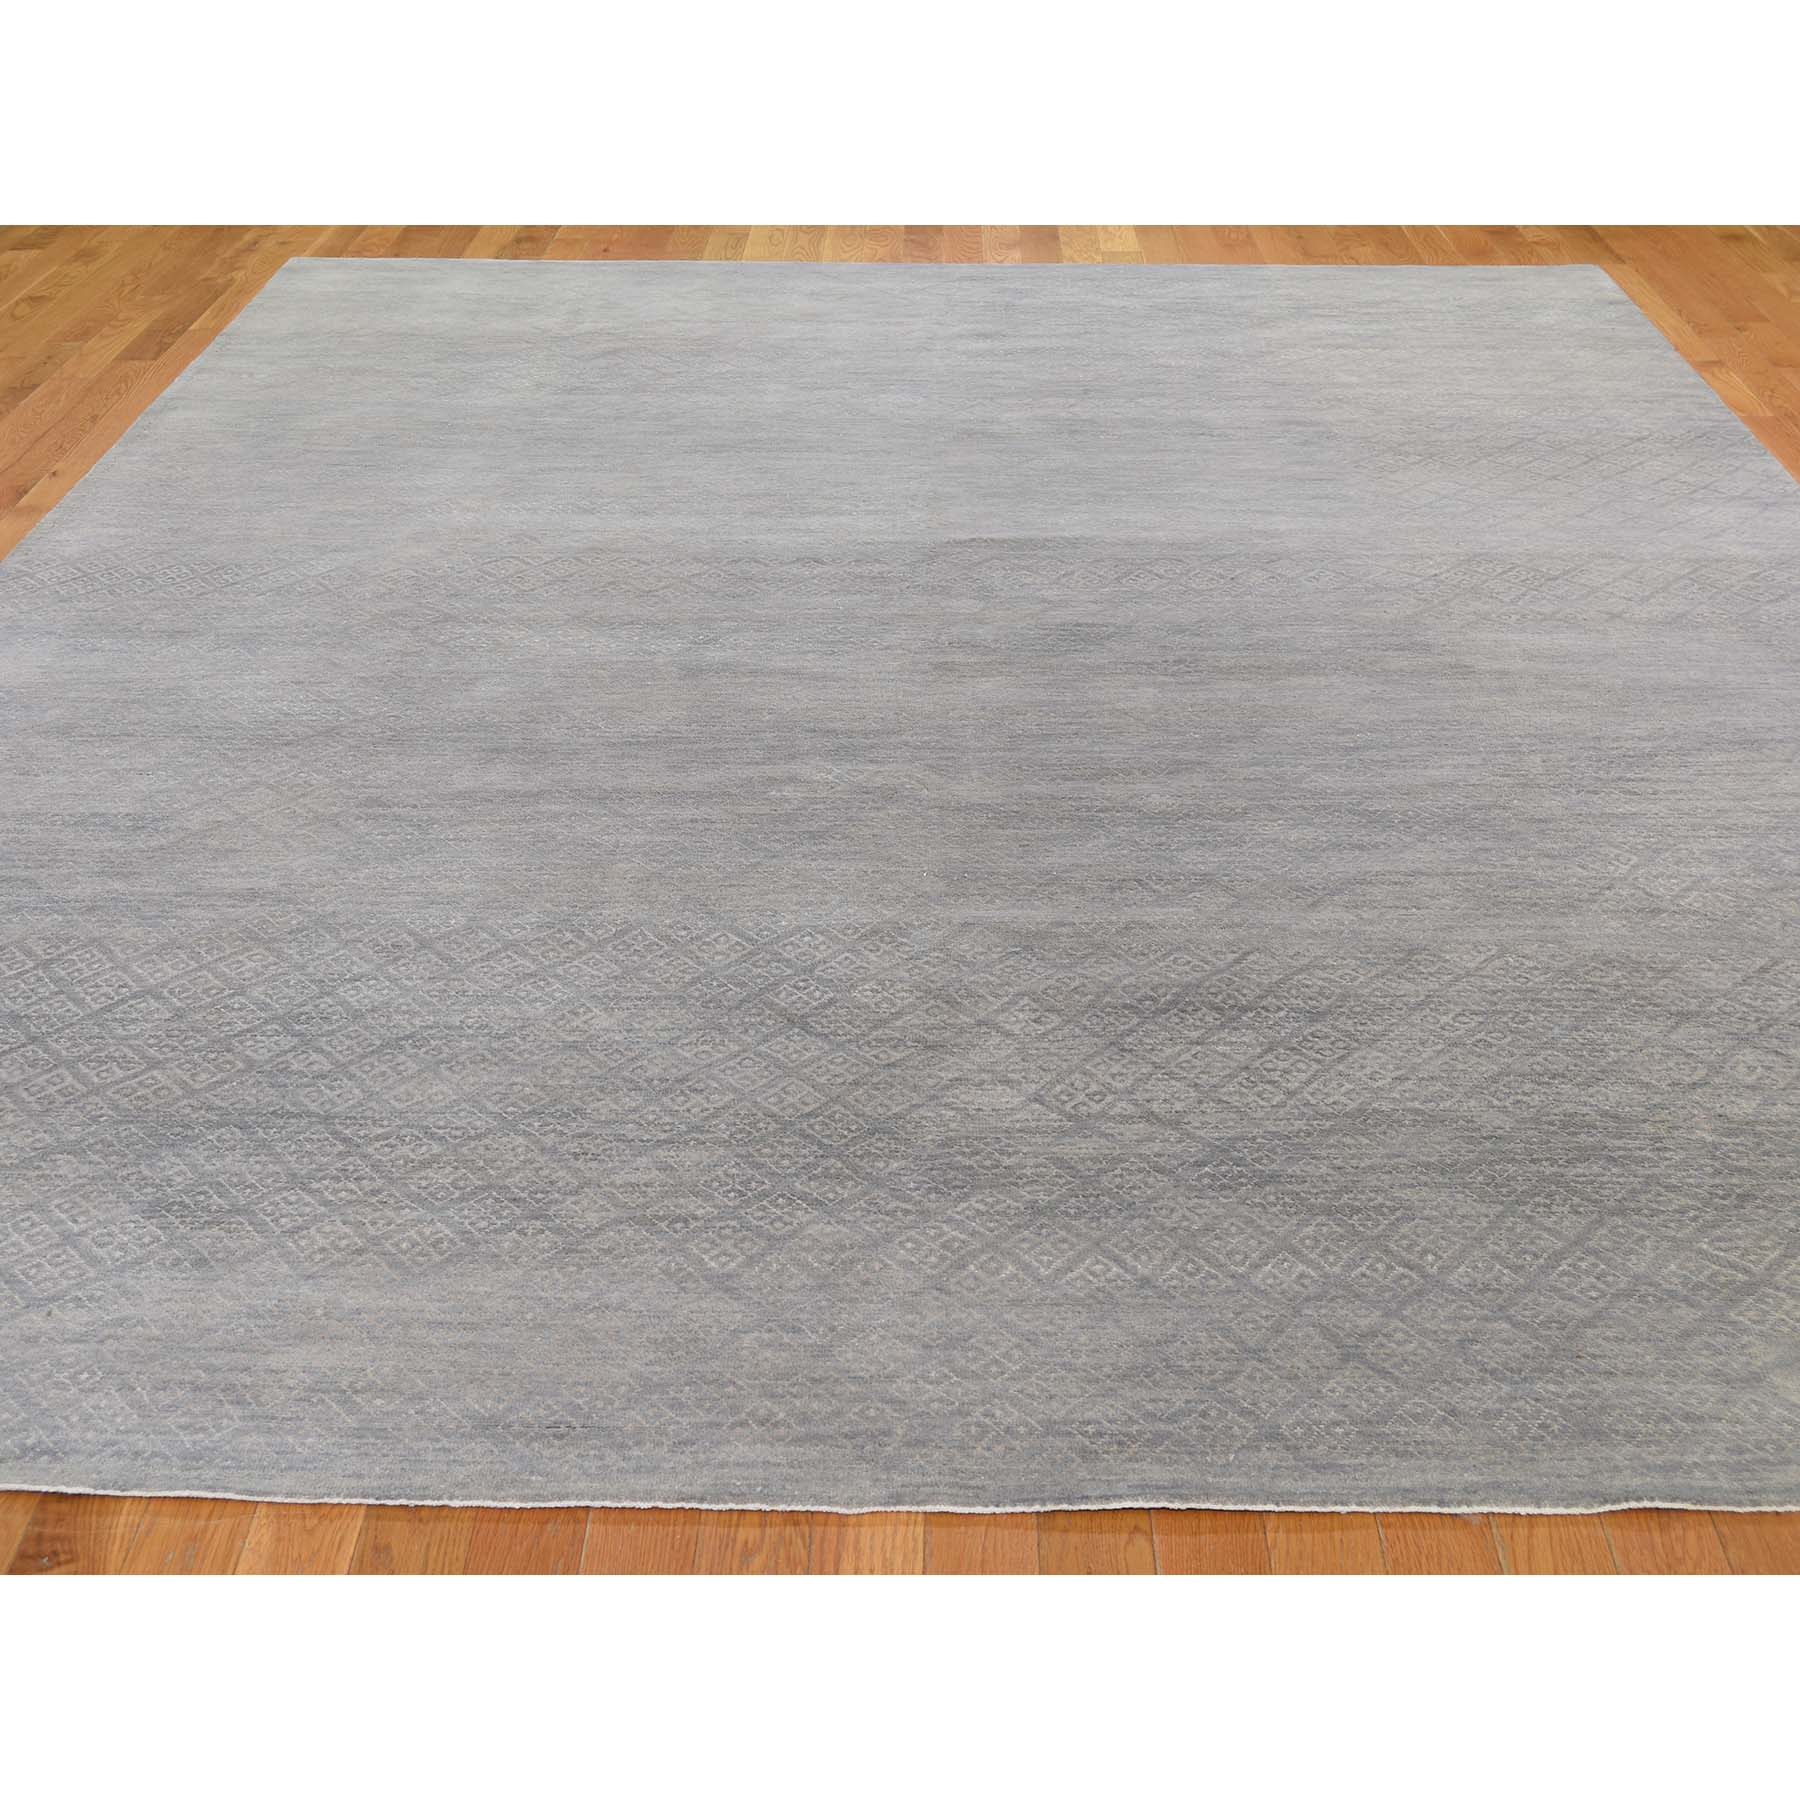 """8'10""""x11'10"""" Gray Modern Tone on Tone Wool and Silk Hand Knotted Oriental Rug"""